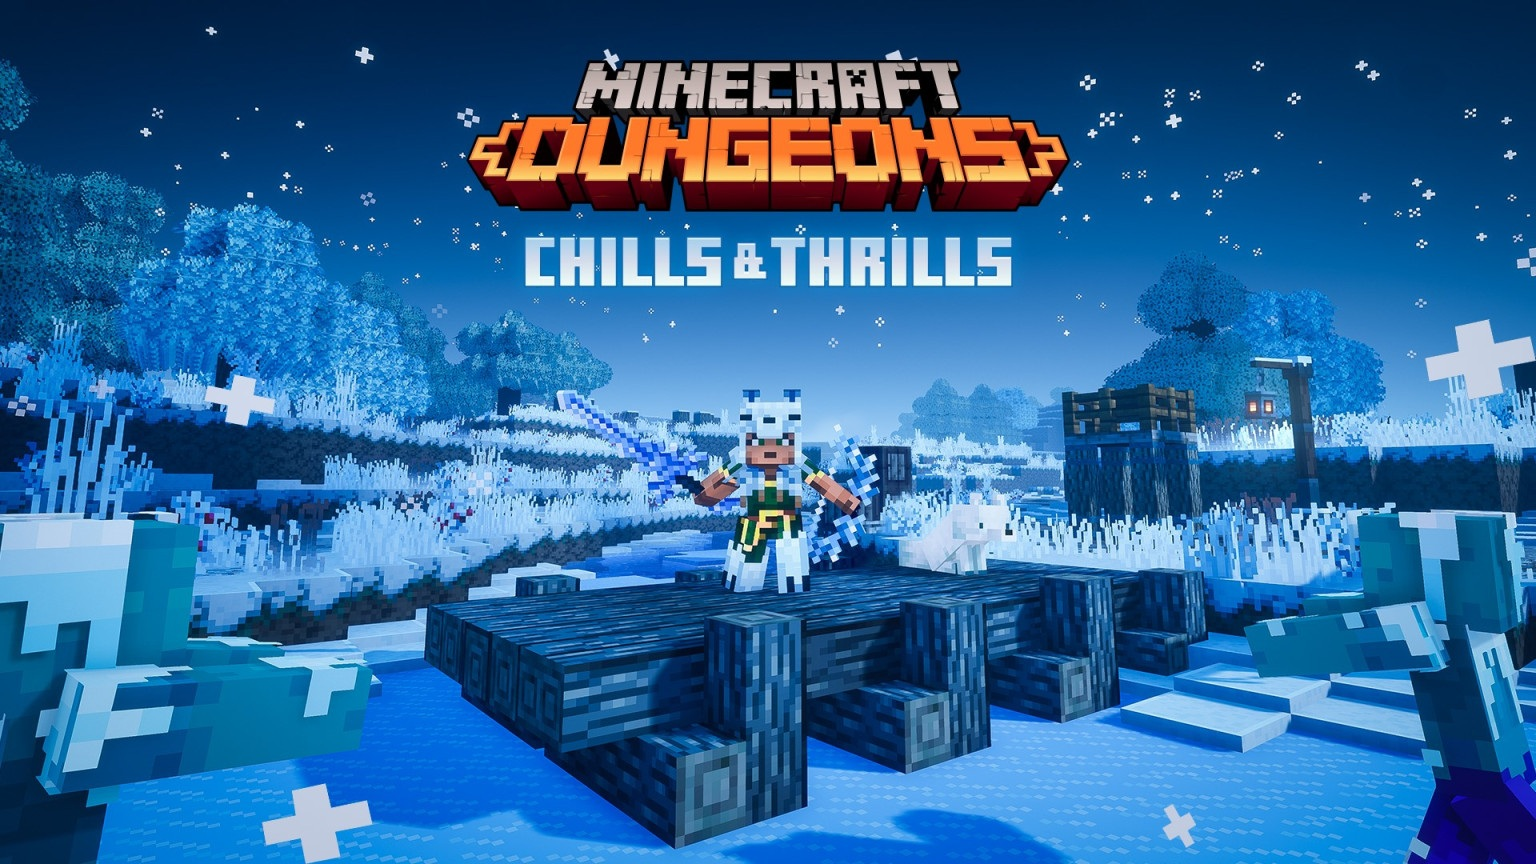 Minecraft Dungeons Seasonal Event Chills and Thrills